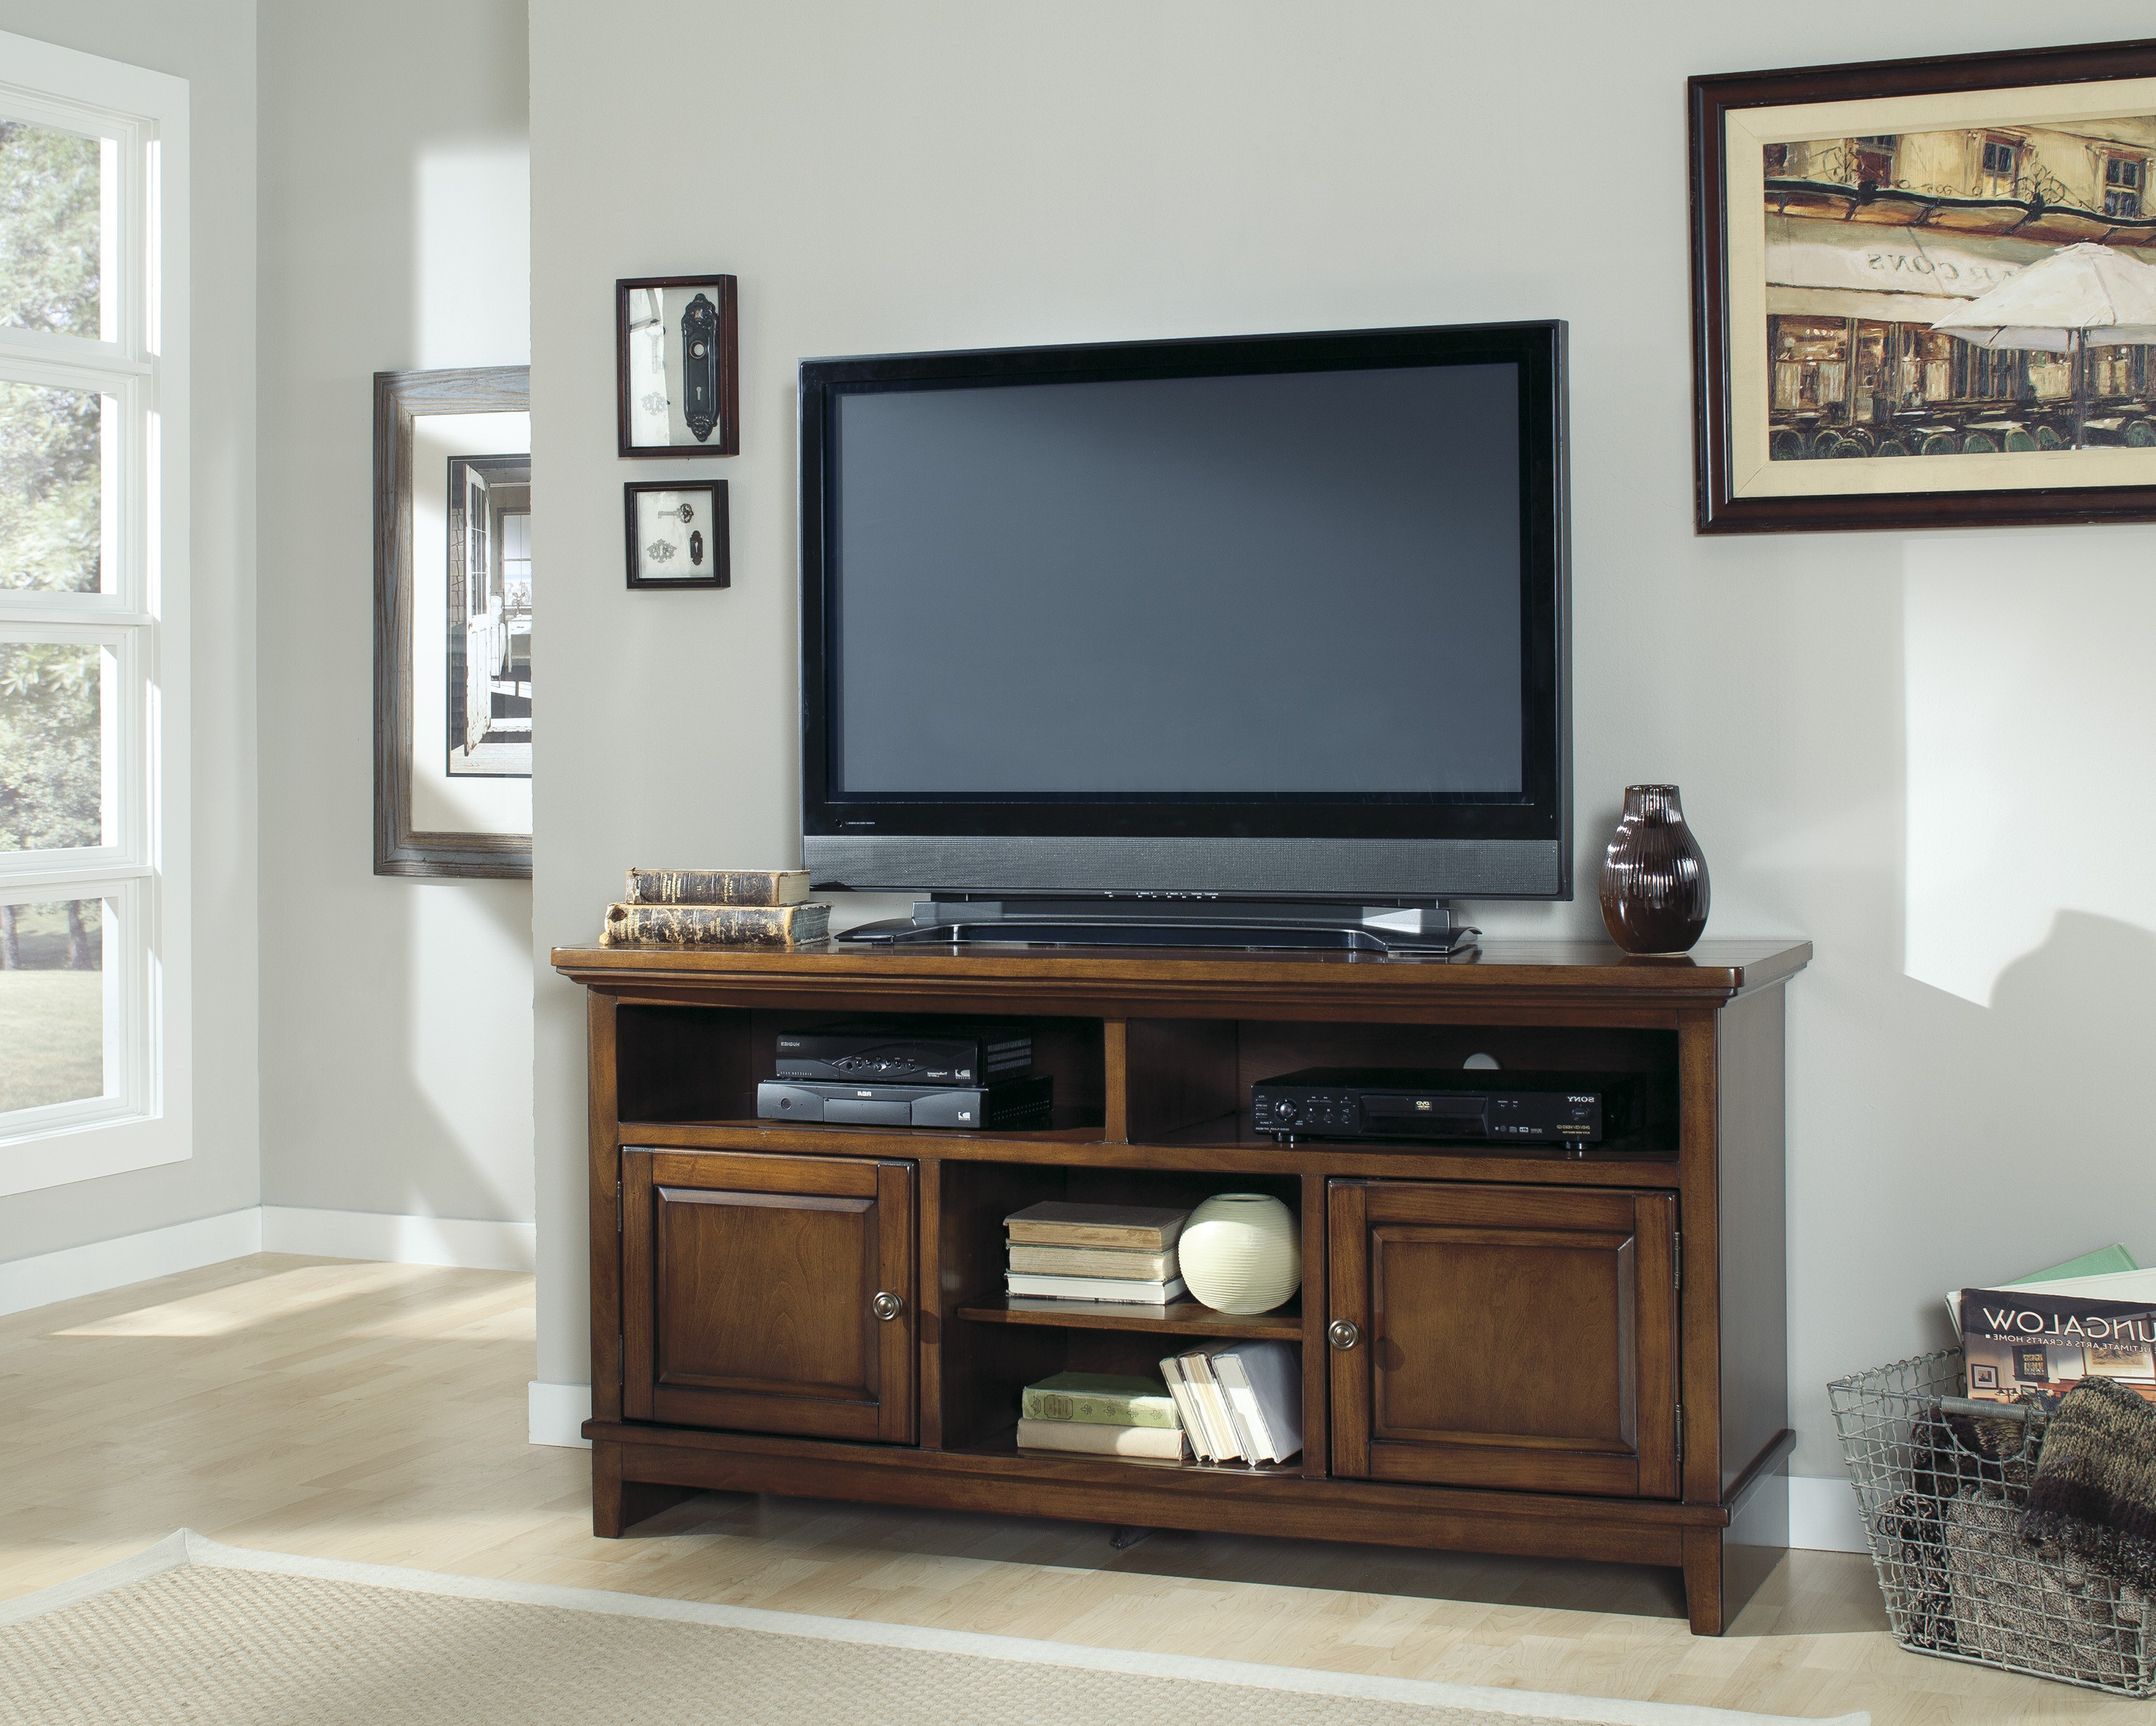 Most Current Likable Large Tv Stands Furniture For Village Fairprice Sri White With Regard To Small Tv Stands On Wheels (View 6 of 20)